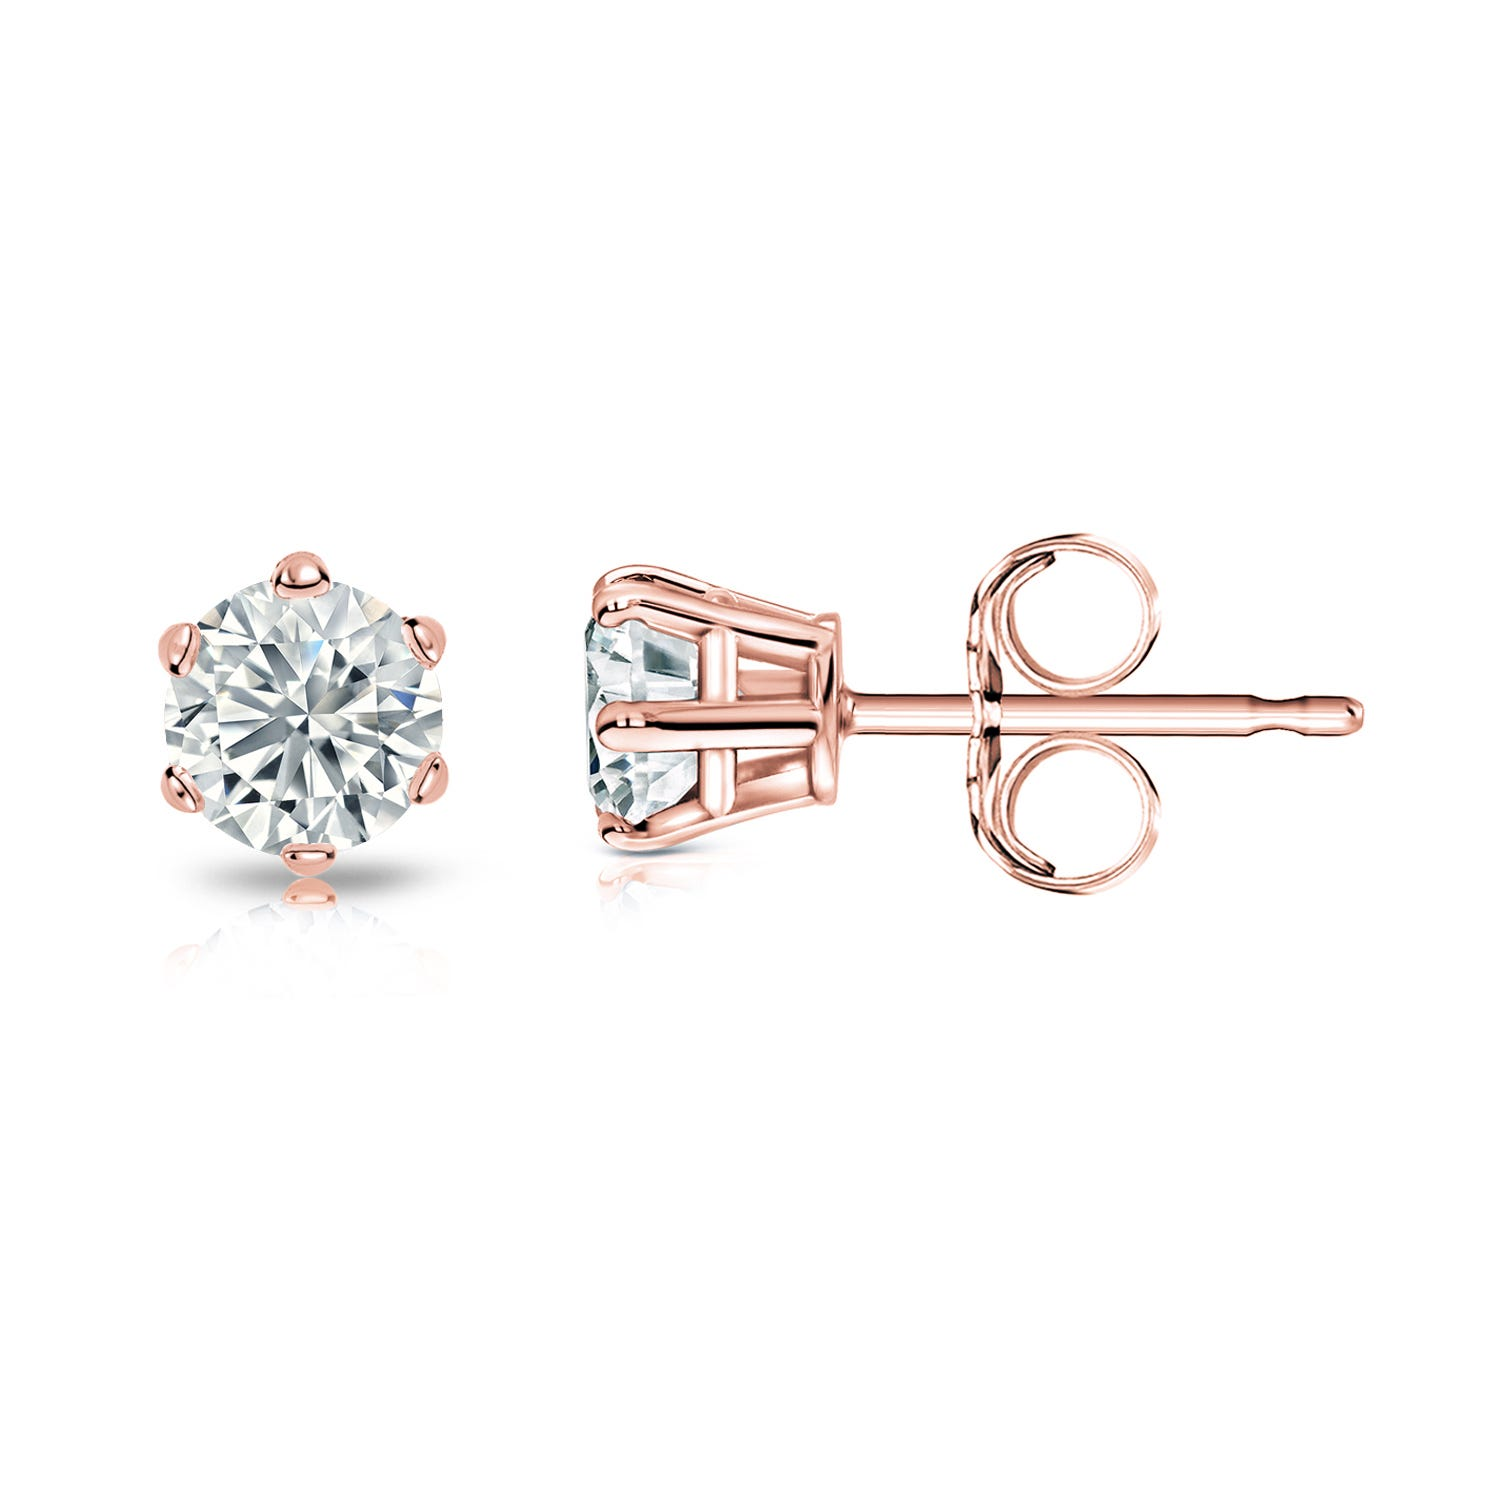 Round Diamond 1/3ctw. (IJ-I2) Solitaire Stud 6-Prong Earrings in 14K Rose Gold